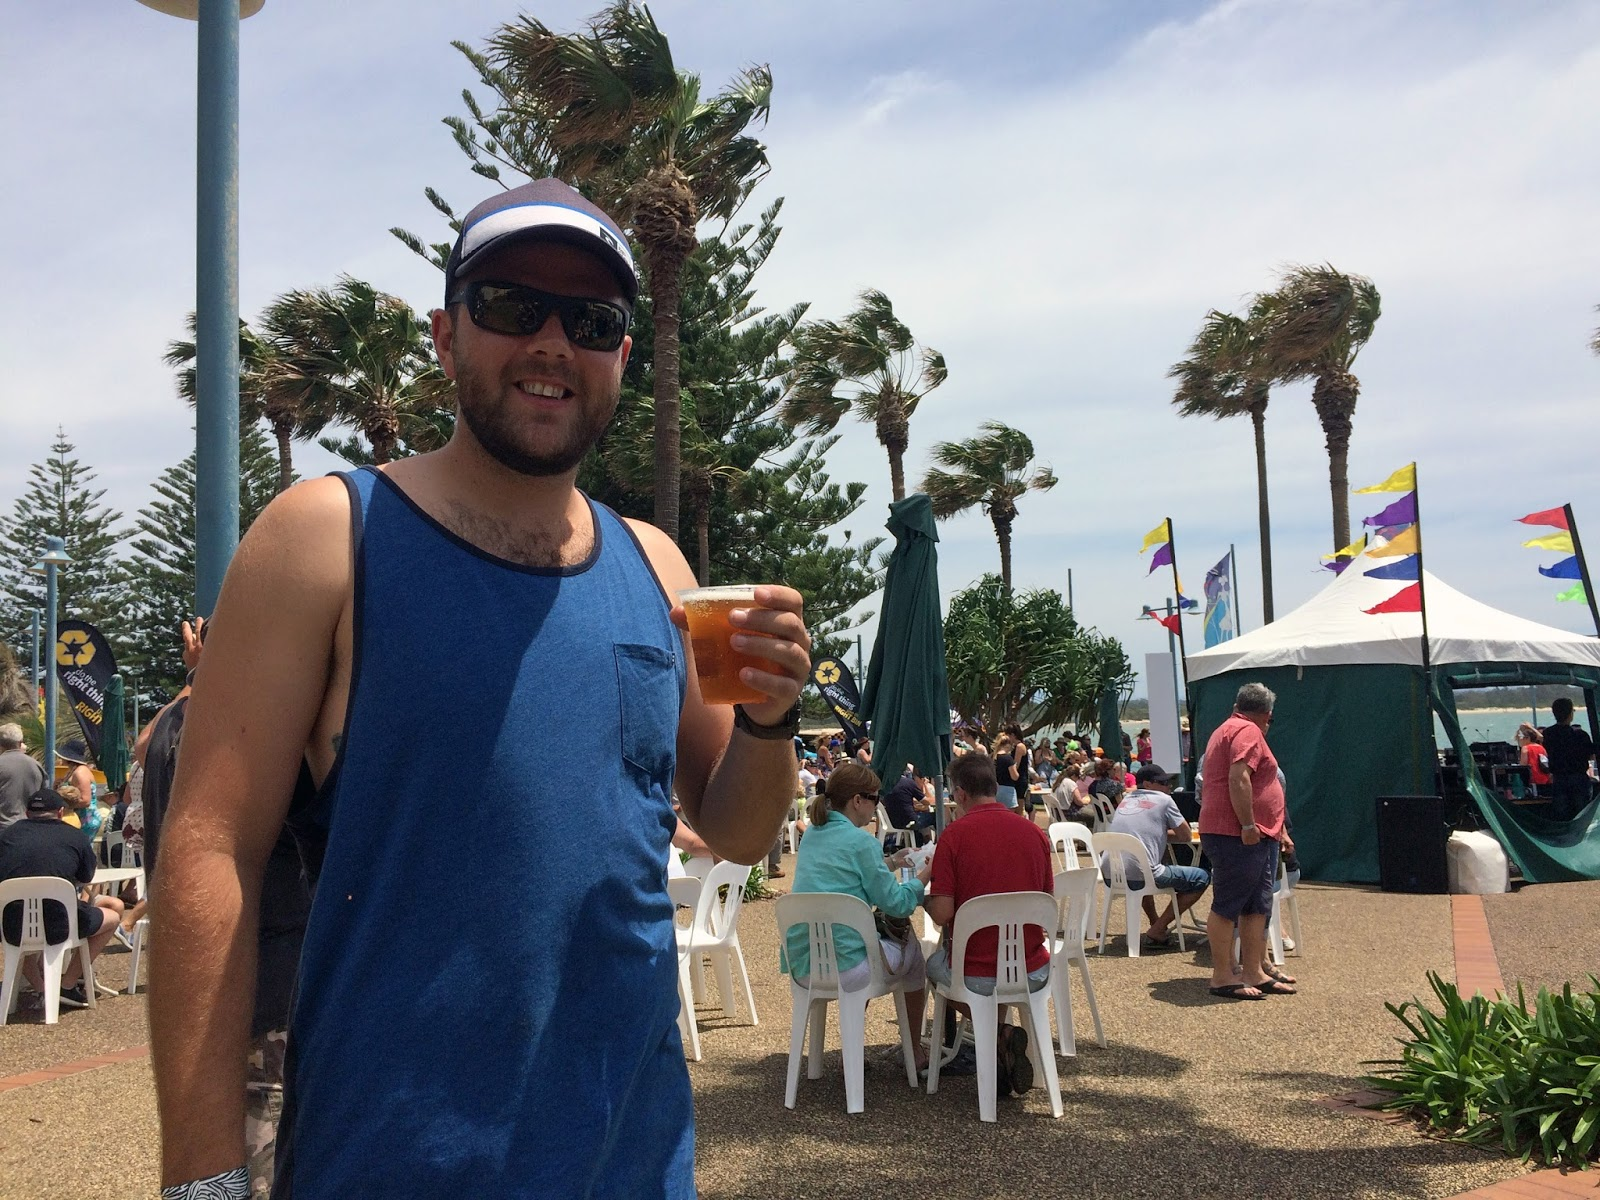 Male with beer Port Macquarie Tastings on Hastings Festival Day